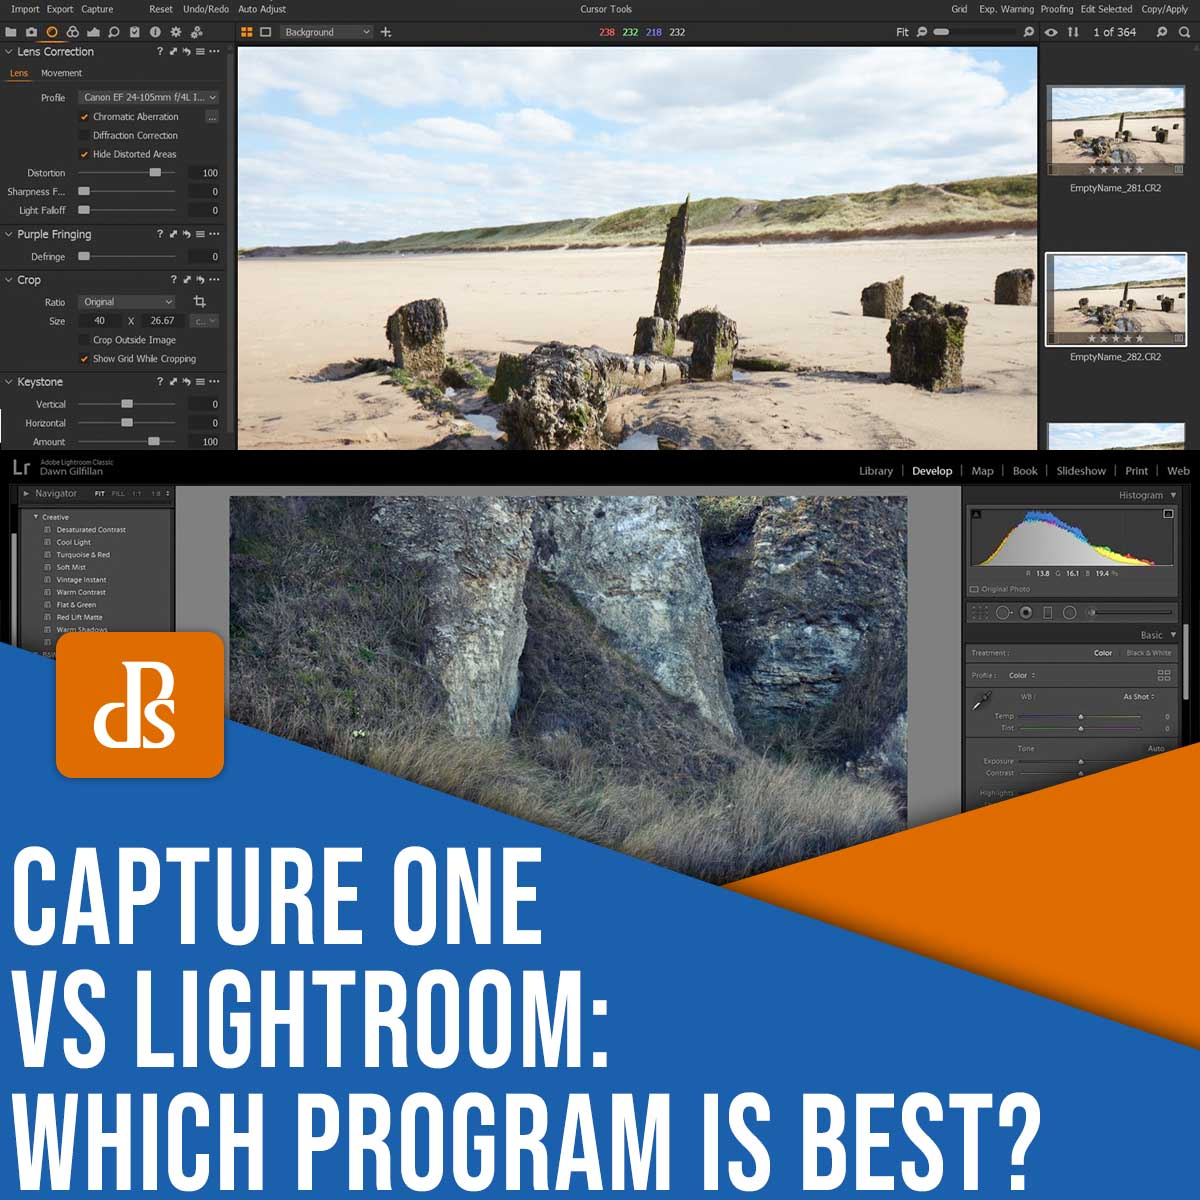 Capture One vs Lightroom: Which Editing Program Is Best? (2021)